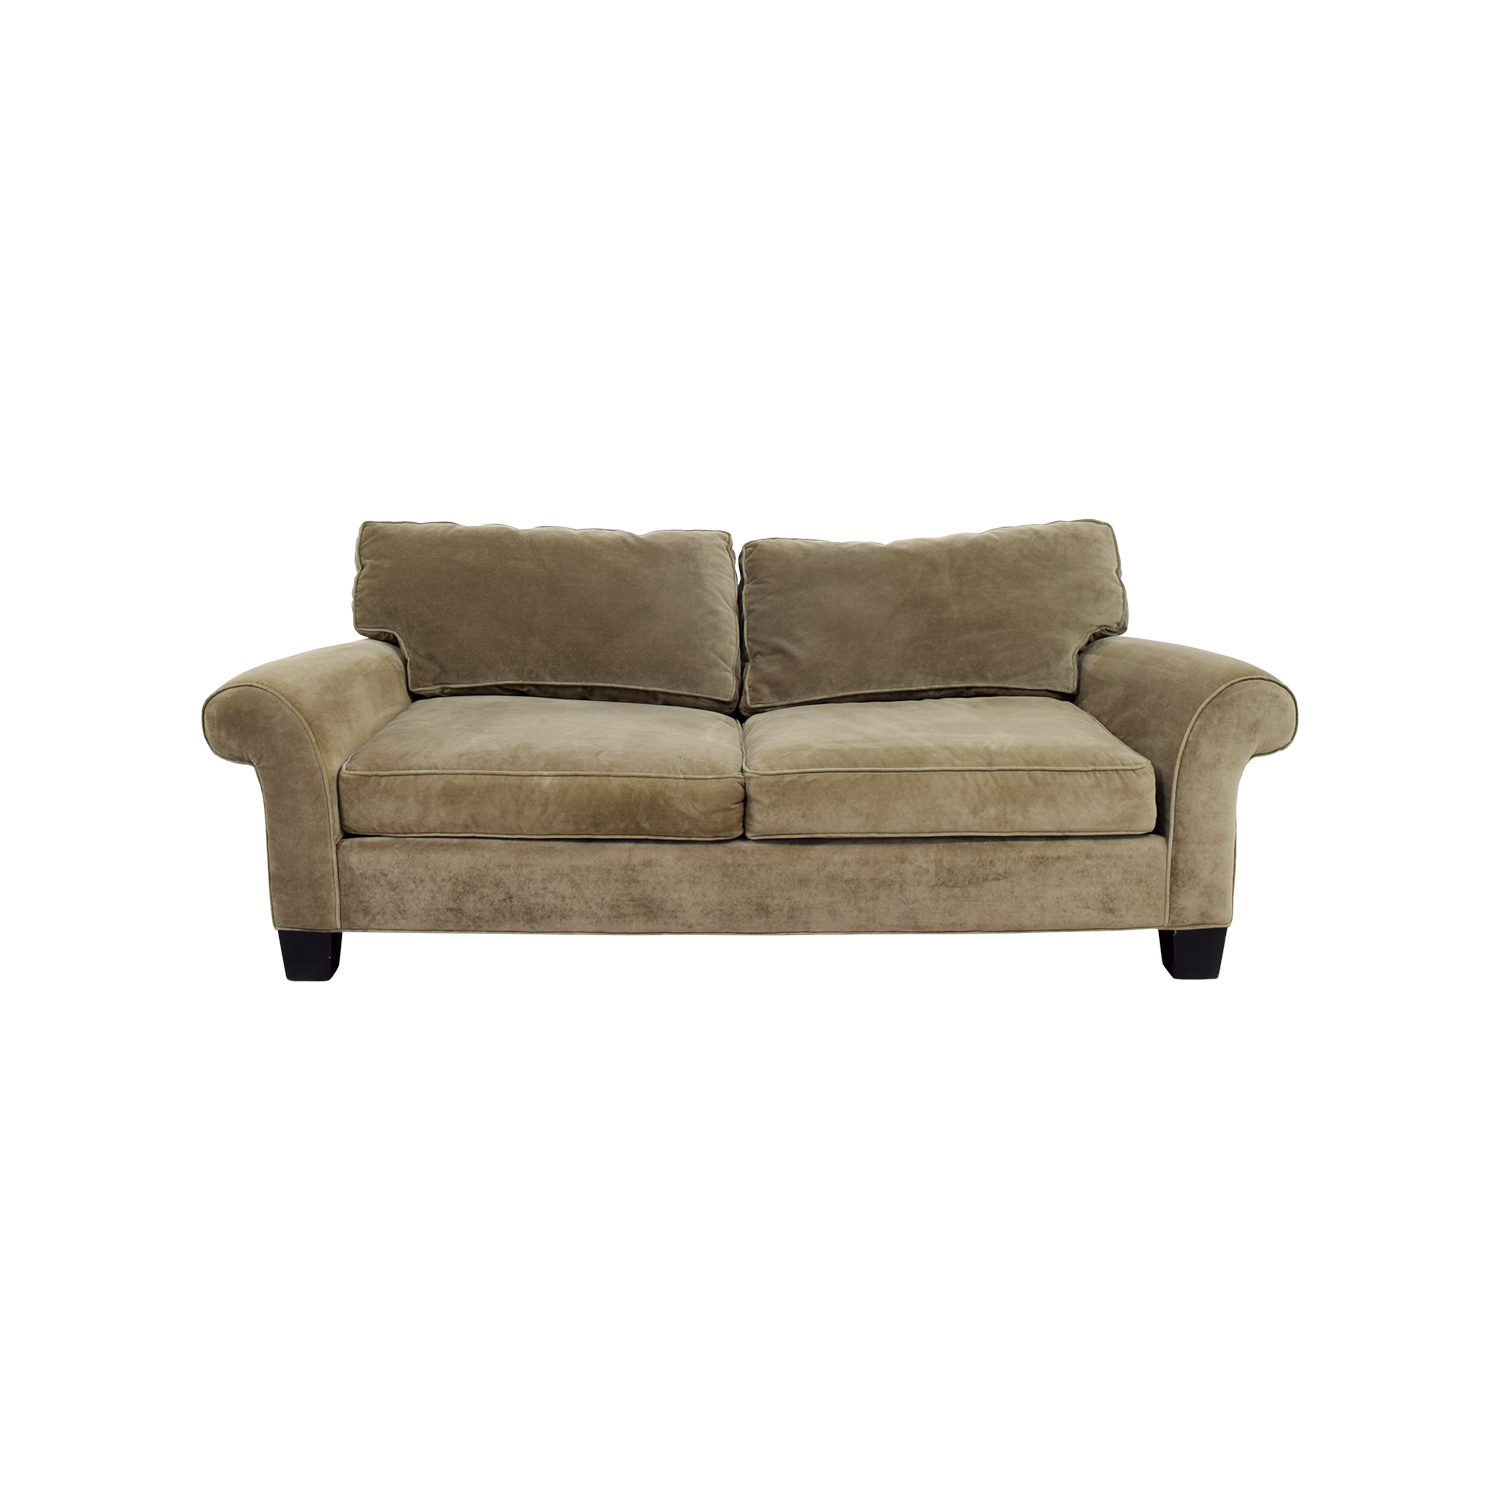 Mitchell Gold + Bob Williams Mitchell Gold + Bob Williams Sofa used